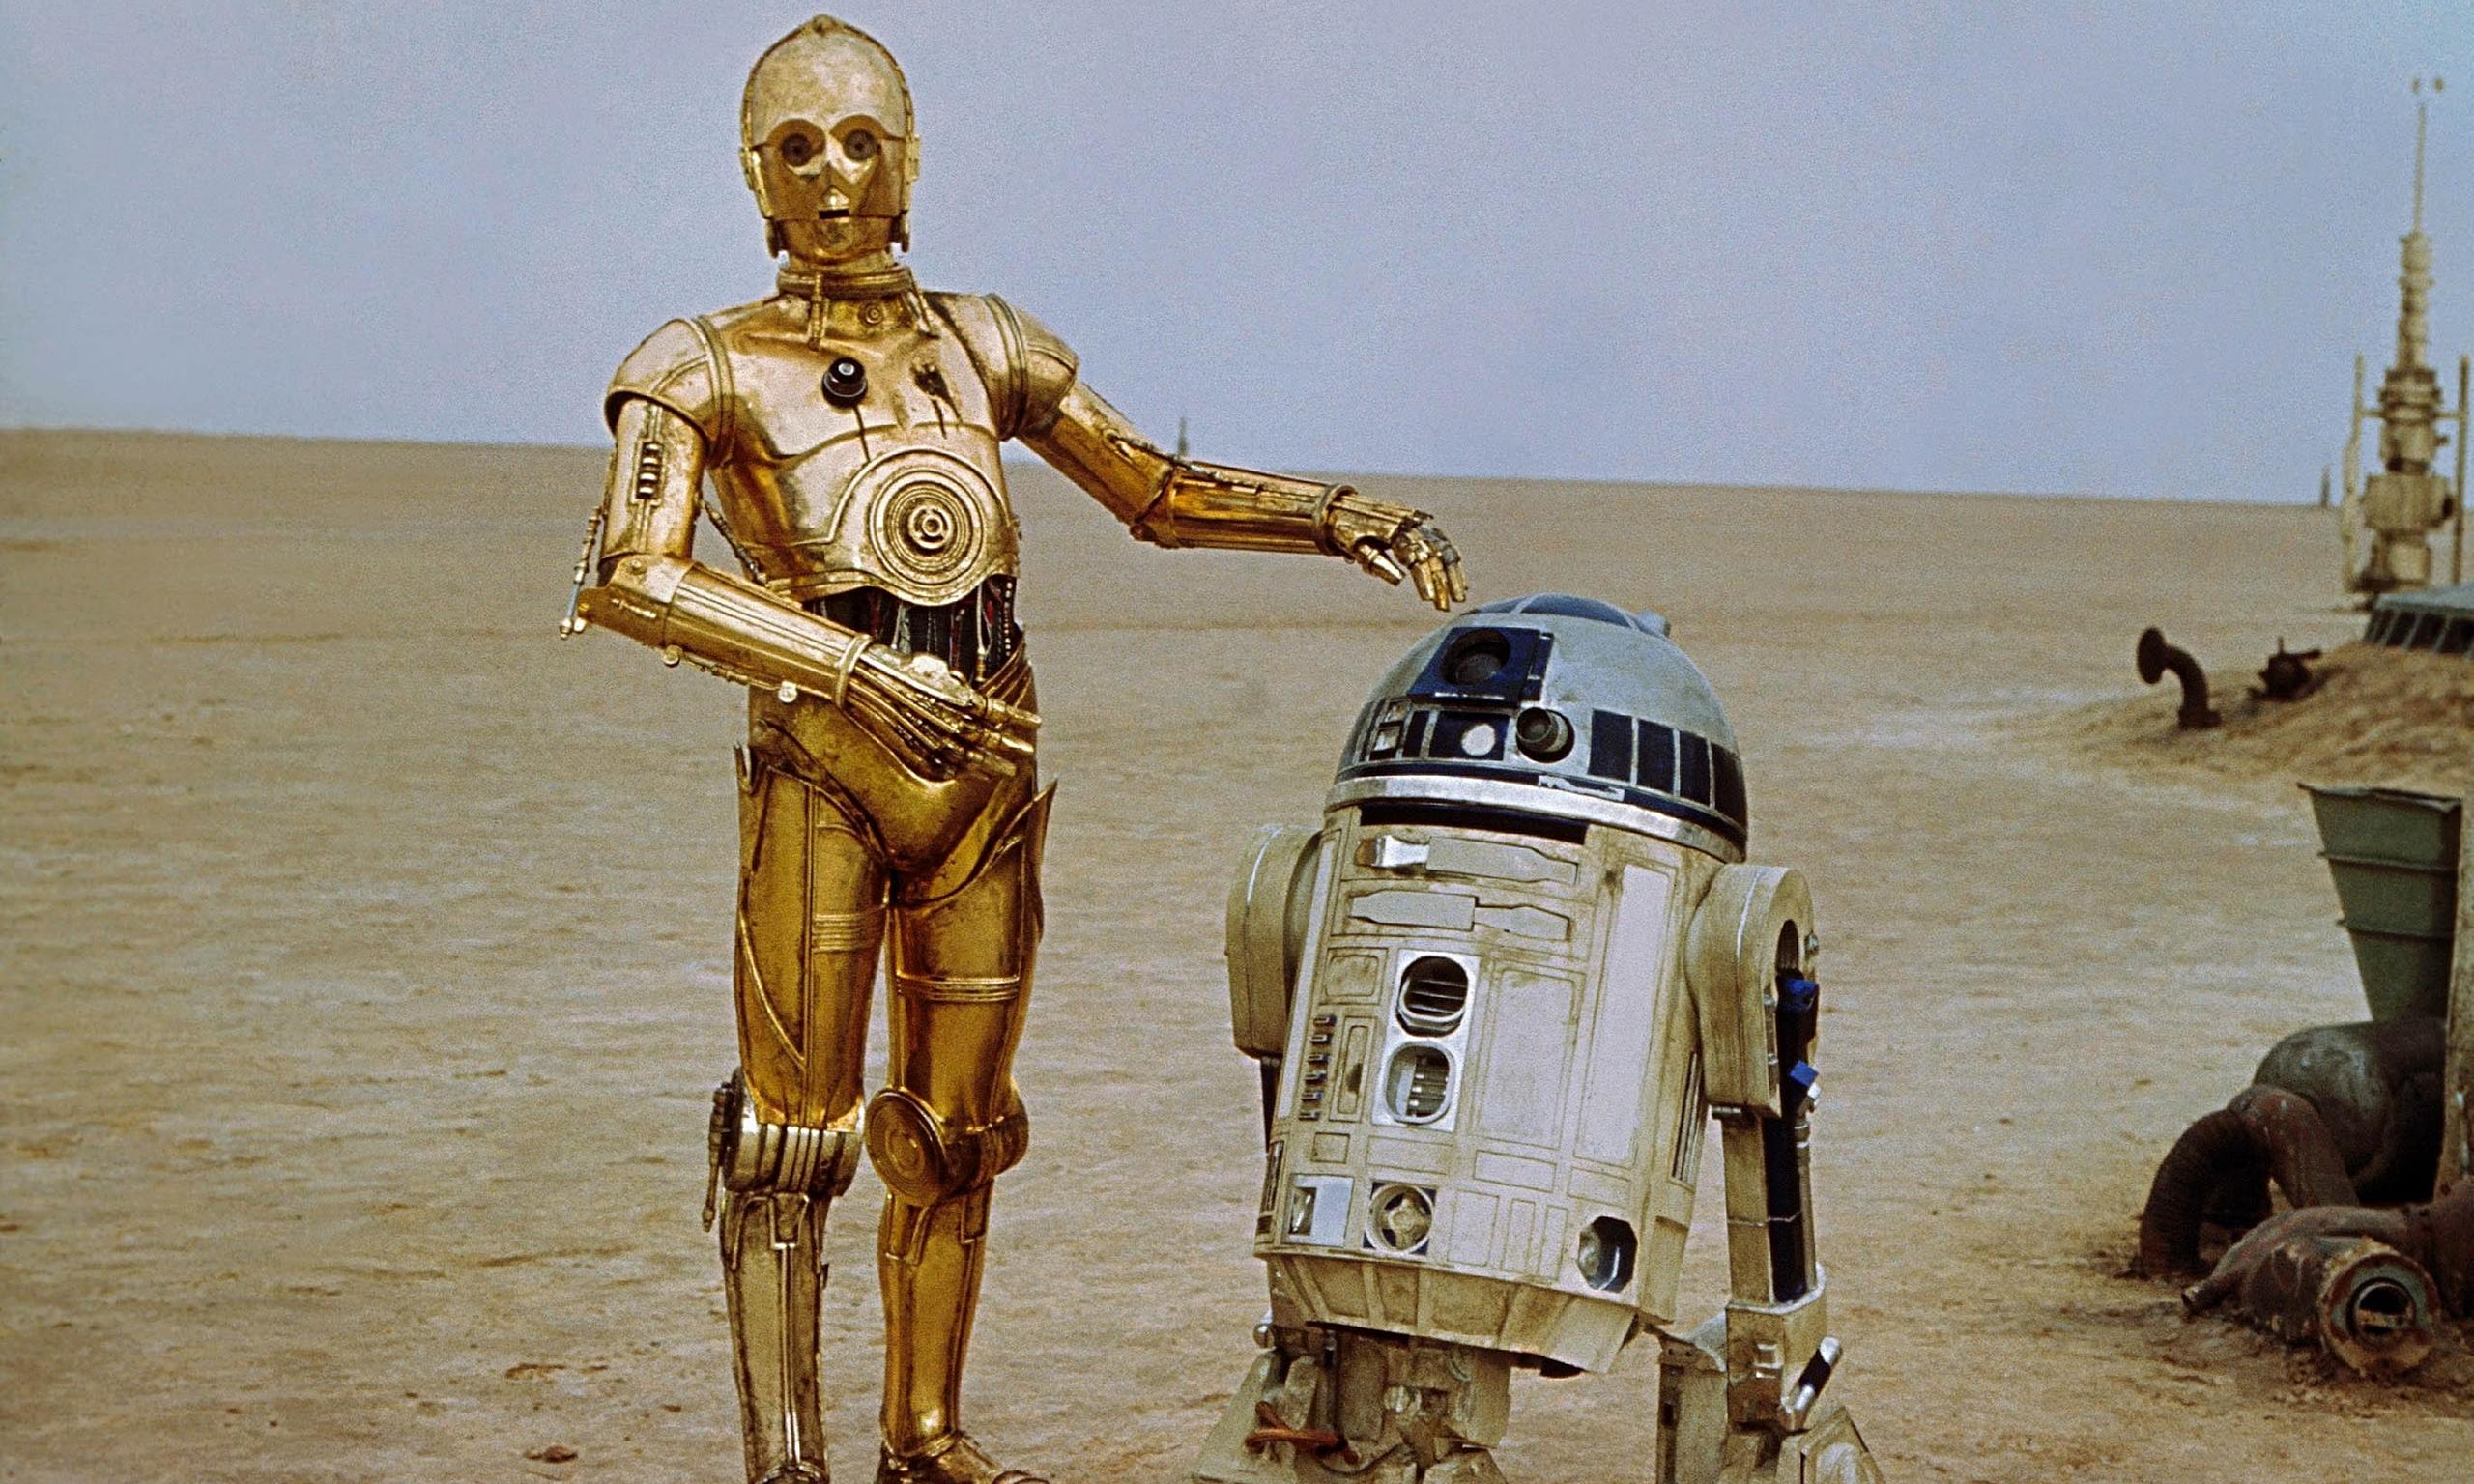 Shifting sands … C-3PO and R2-D2 on Tatooine in the Star Wars Episode IV: A New Hope